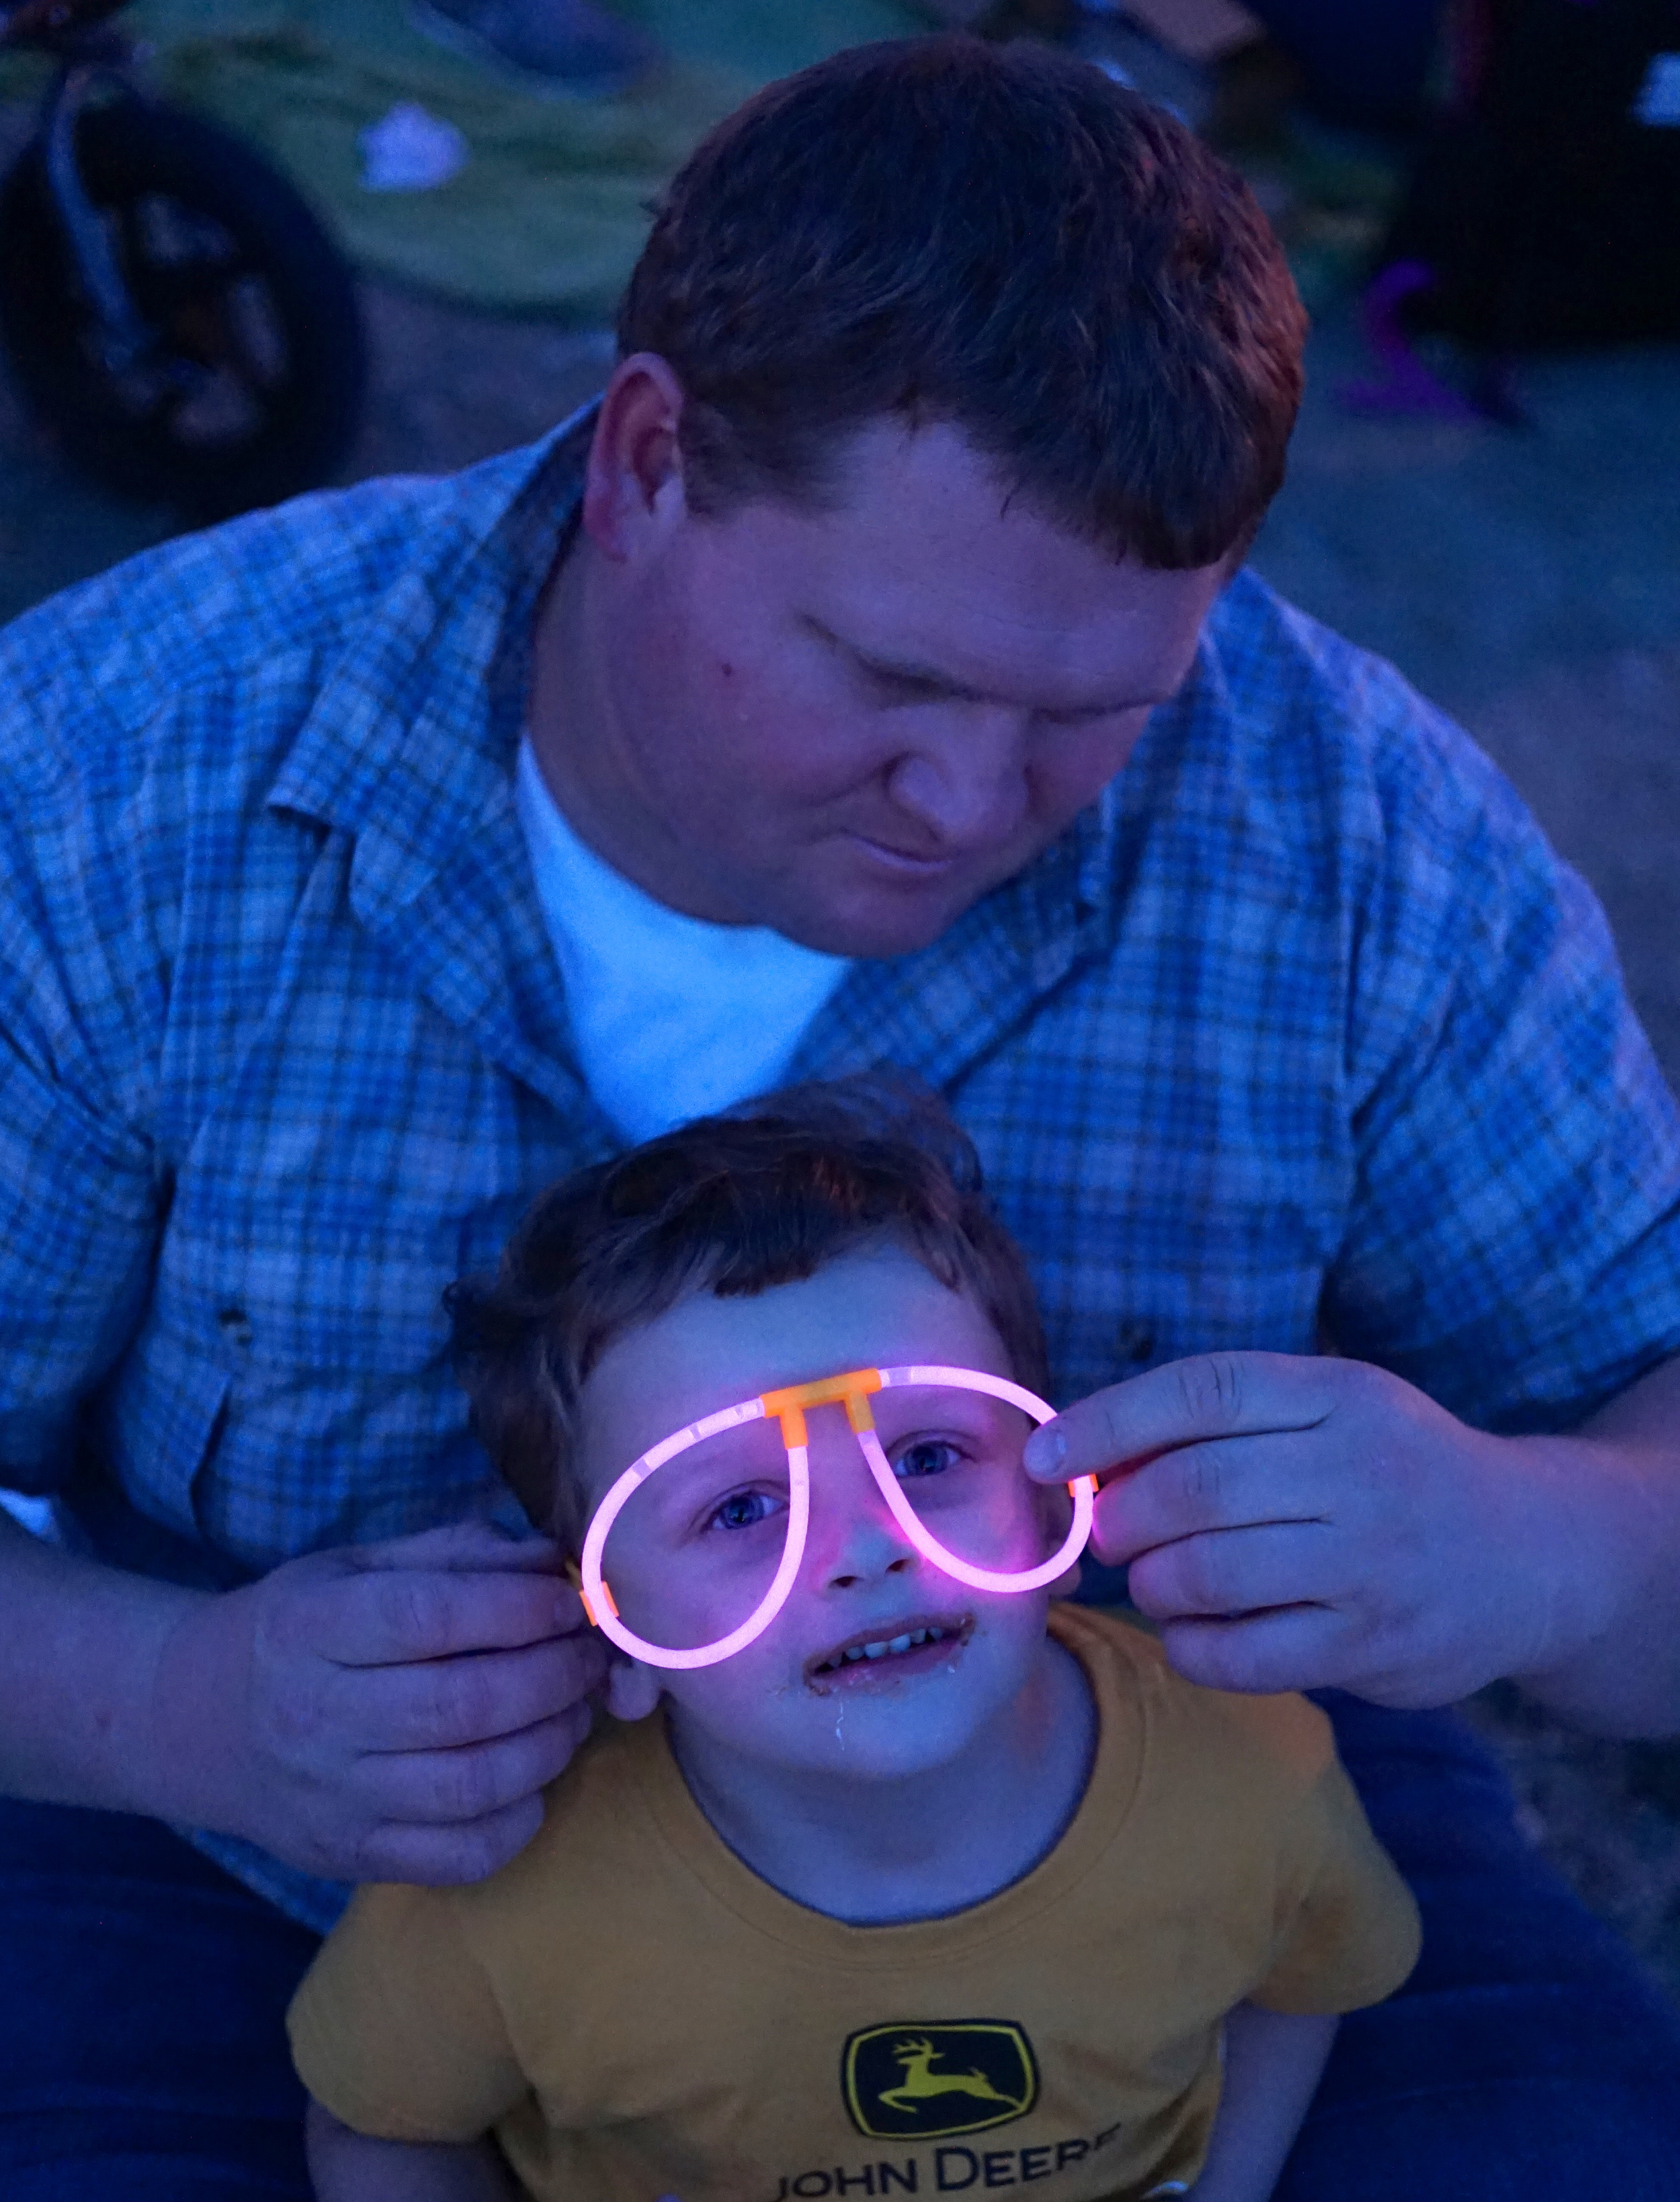 Dave fitting Asher with glow stick glasses